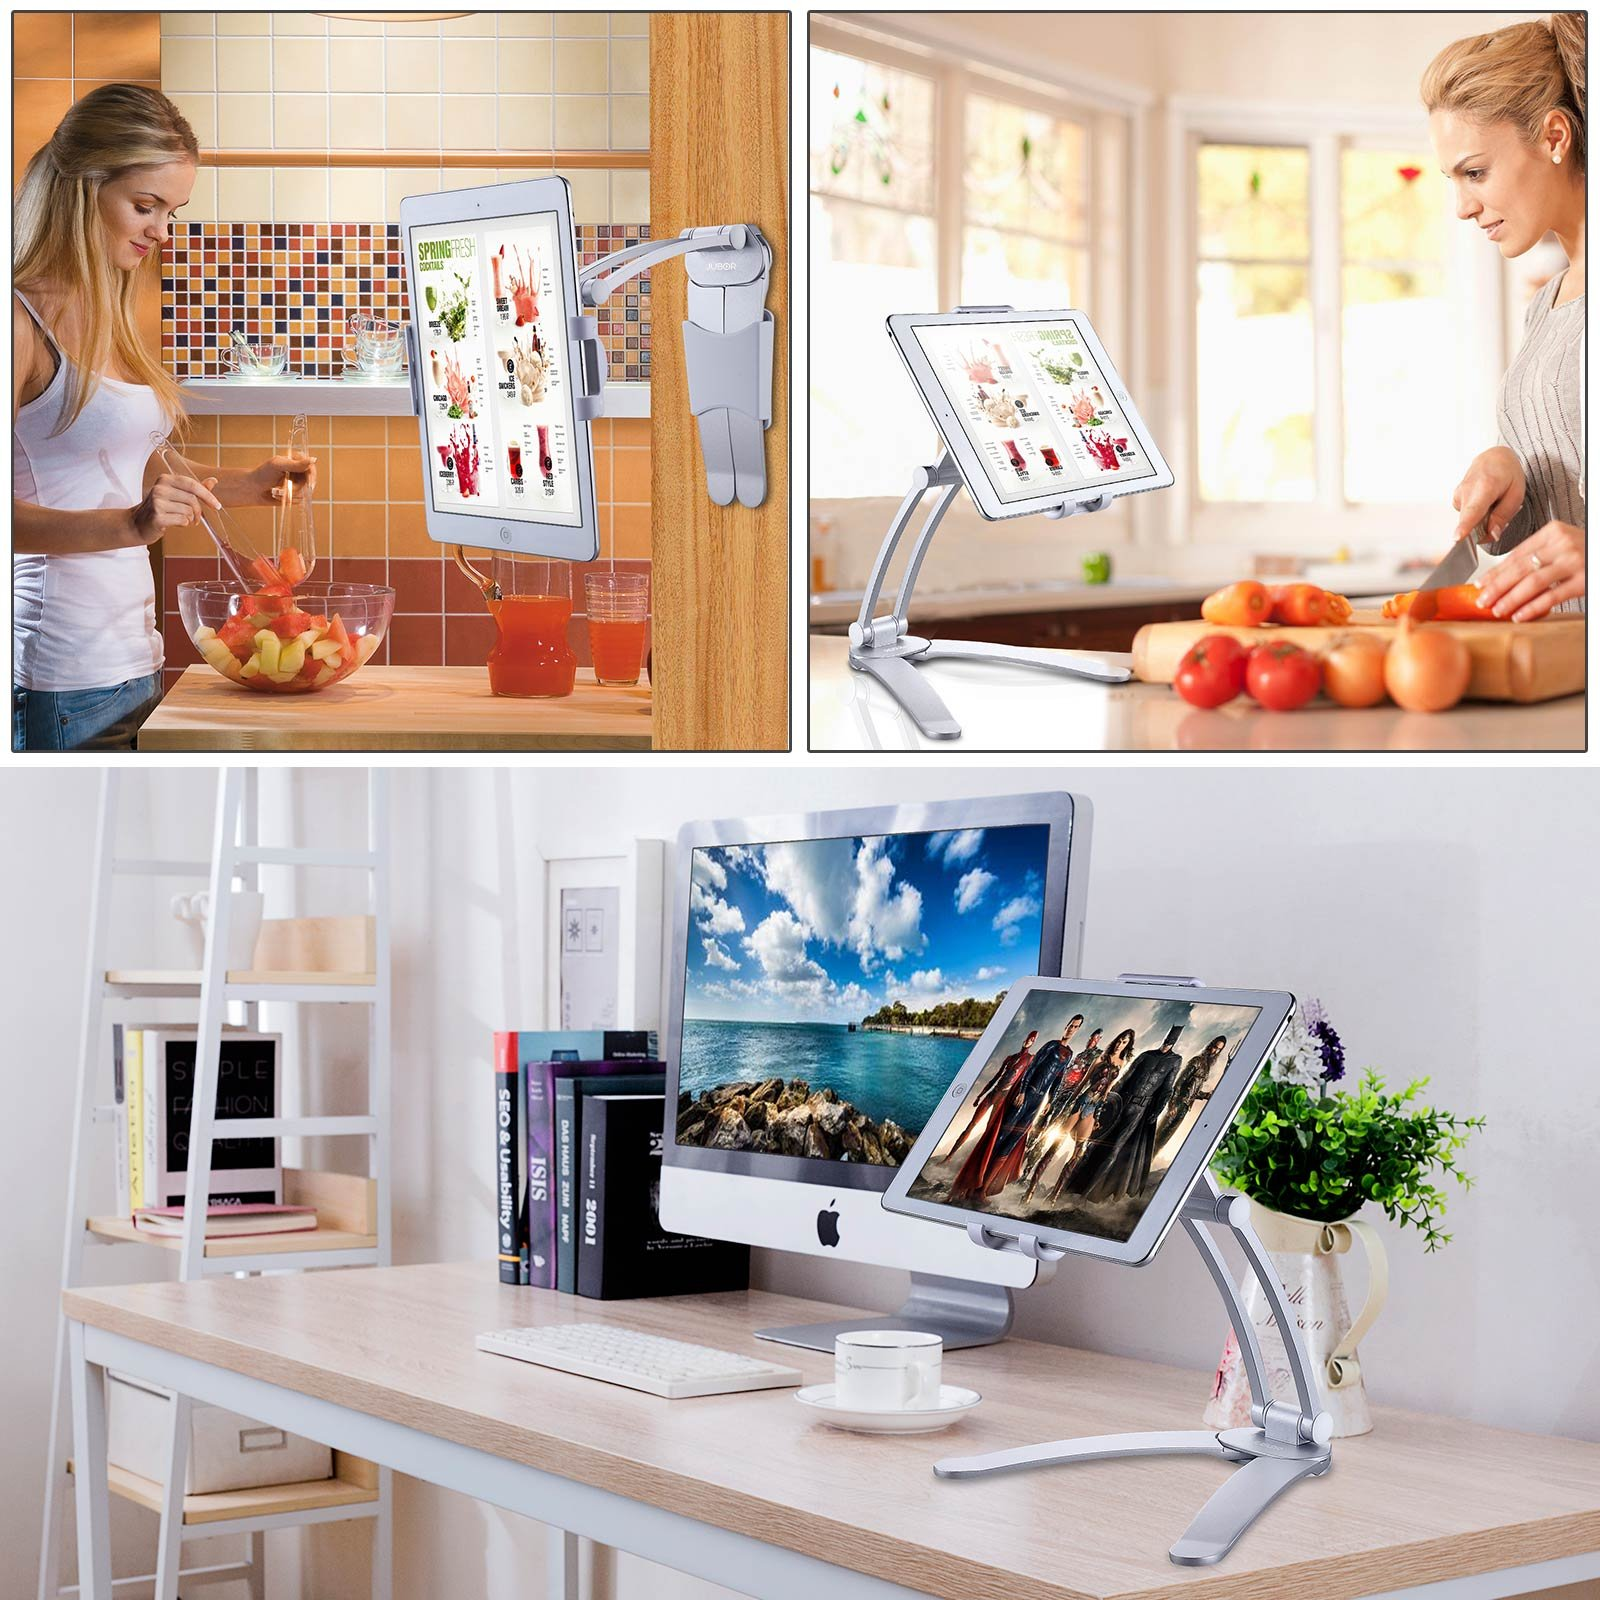 Jubor iPad Stand Wall Mount, 2-in-1 Kitchen Tablet Holder for iPad Pro, Surface Pro, Nintendo Switch, iPad Mini, 7''-12'' Tablet, Adjustable Easy Install 360° Rotating CounterTop Desk Recipe by Jubor (Image #6)